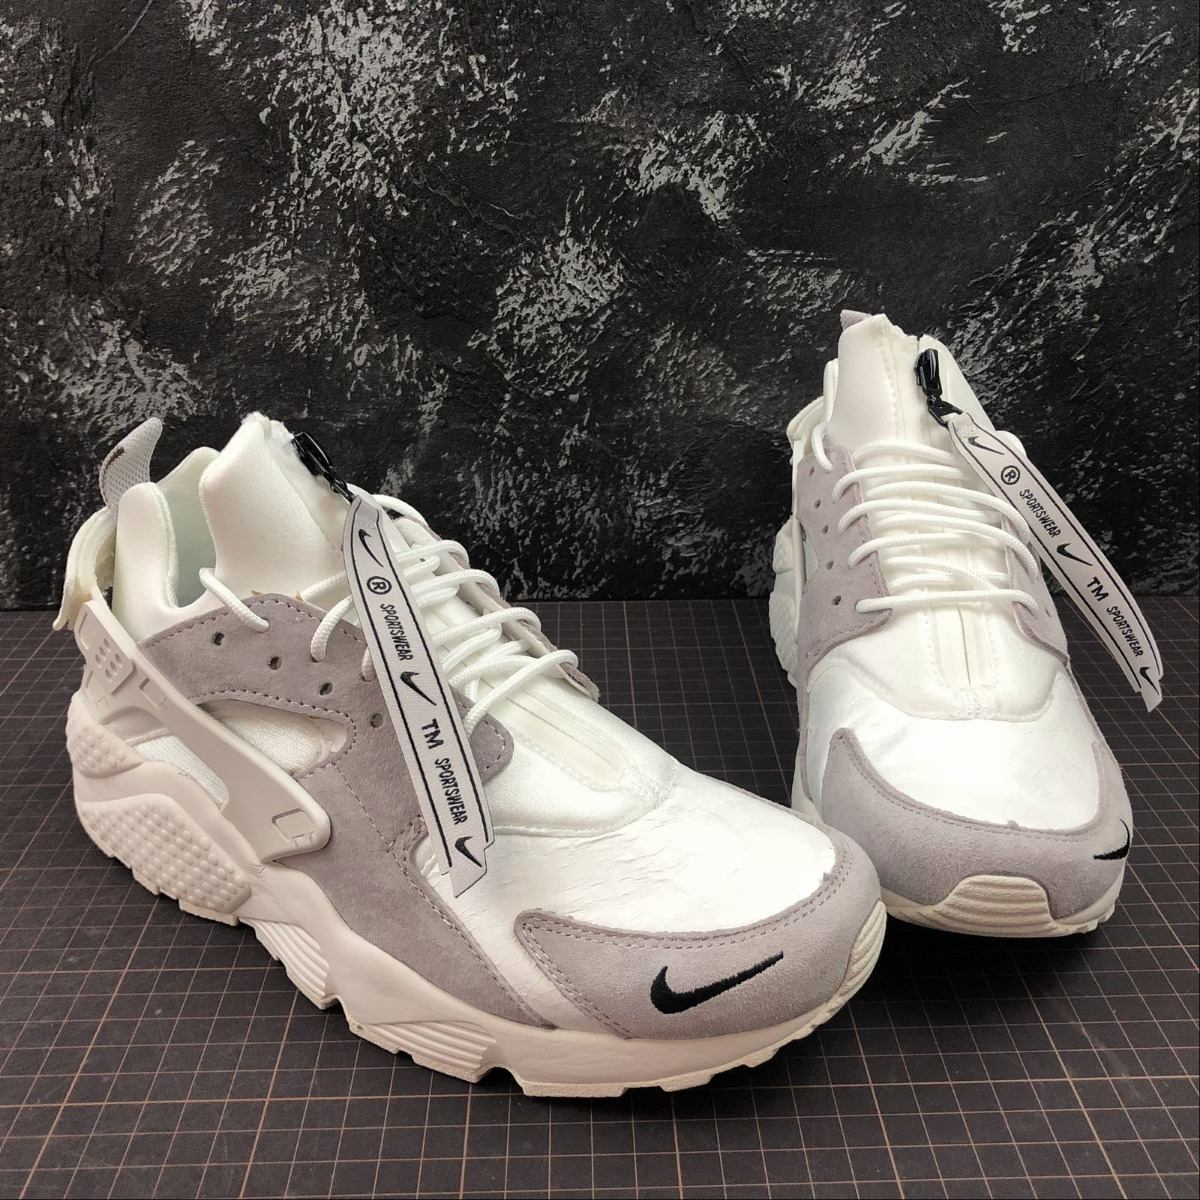 91e93c5b6be nike air huarache 90 10 all star 2018  vast grey   white . Cargando zoom.